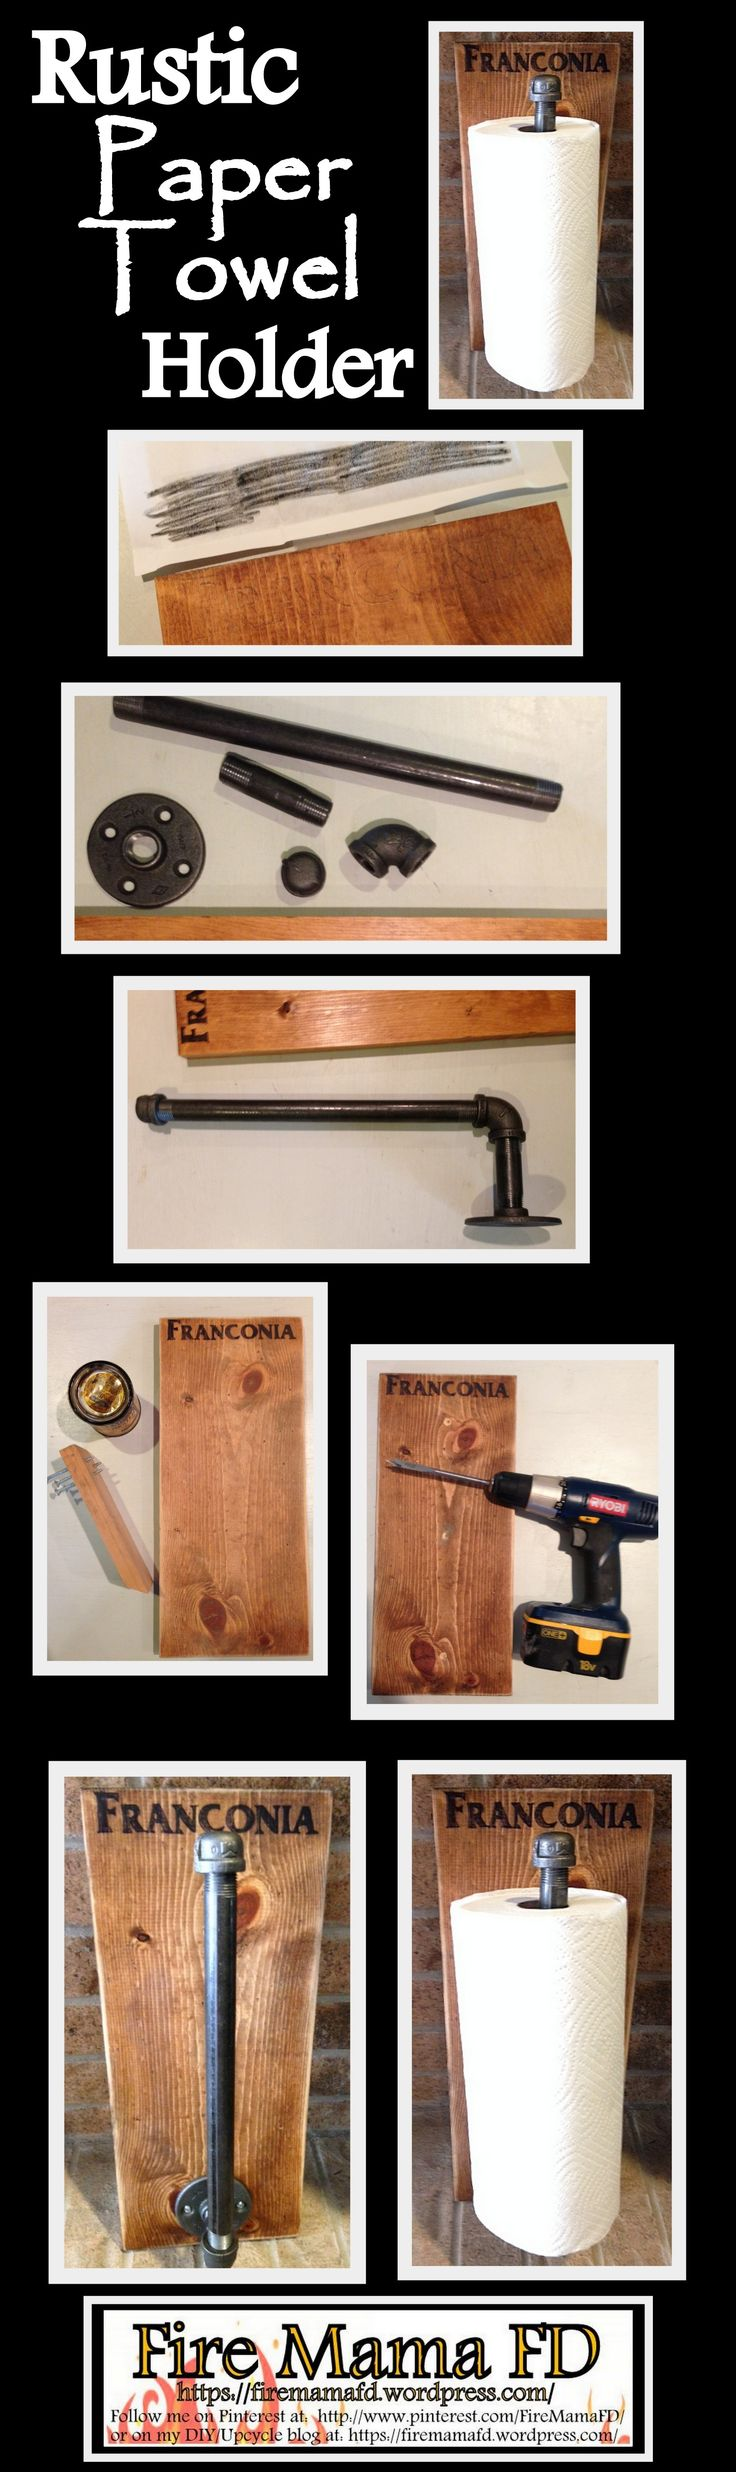 Rustic paper towel holder from plumbing pipe. DIY for under $15.00